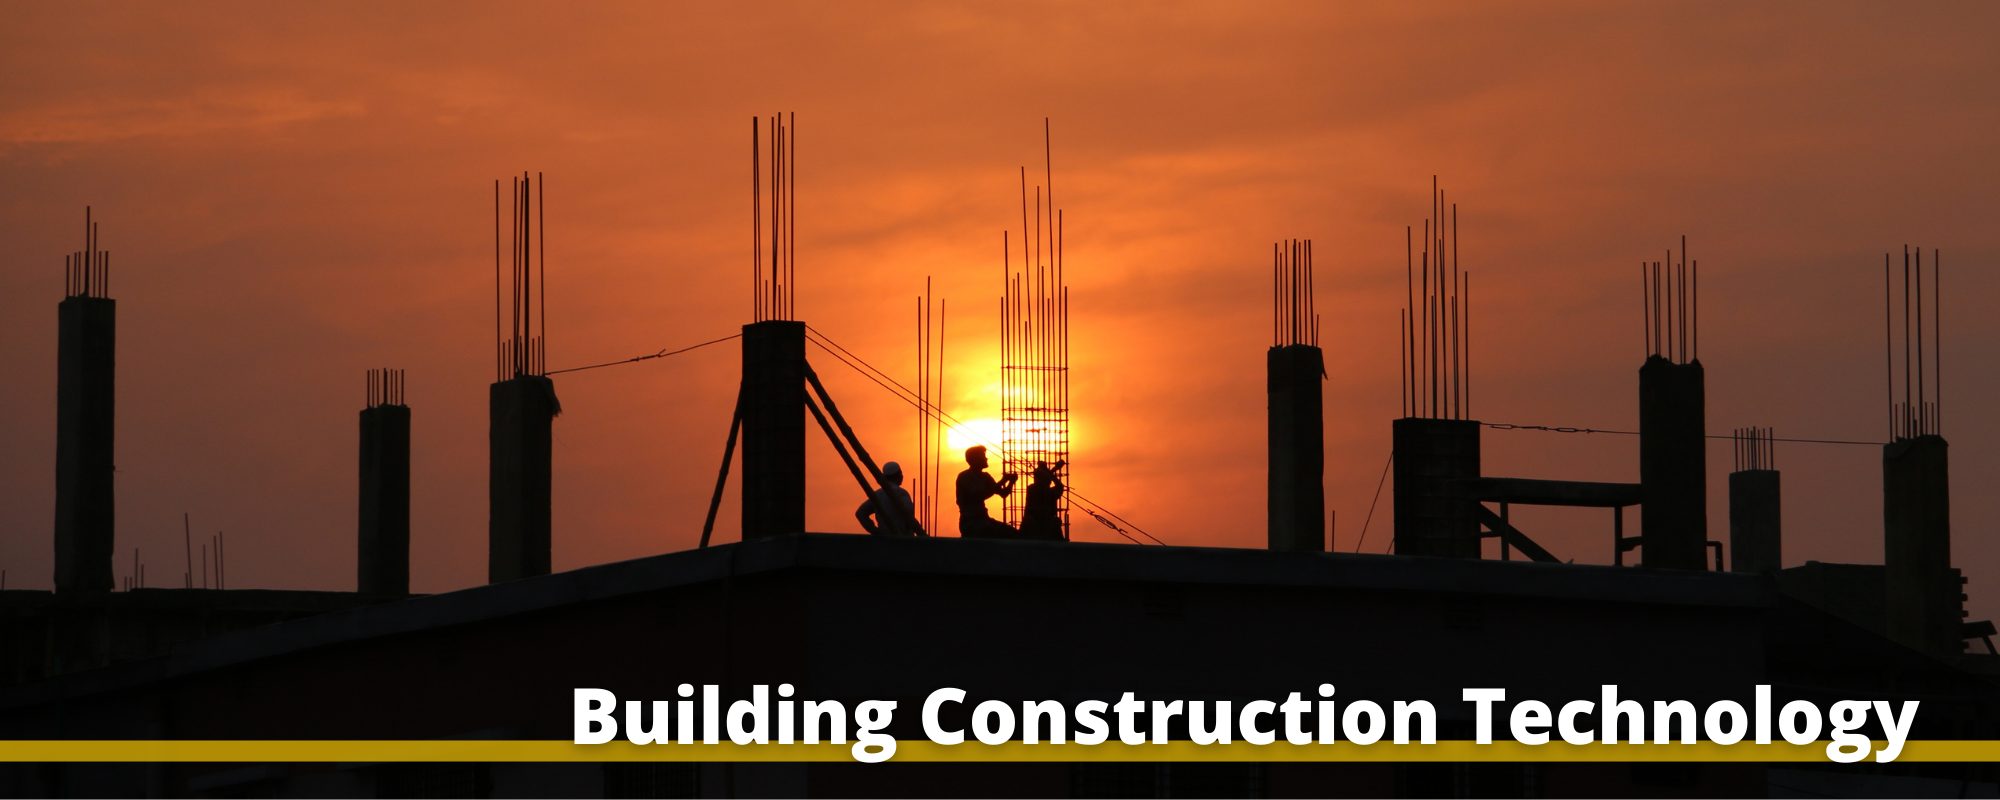 Welcome to the Building Construction Technology libguide.